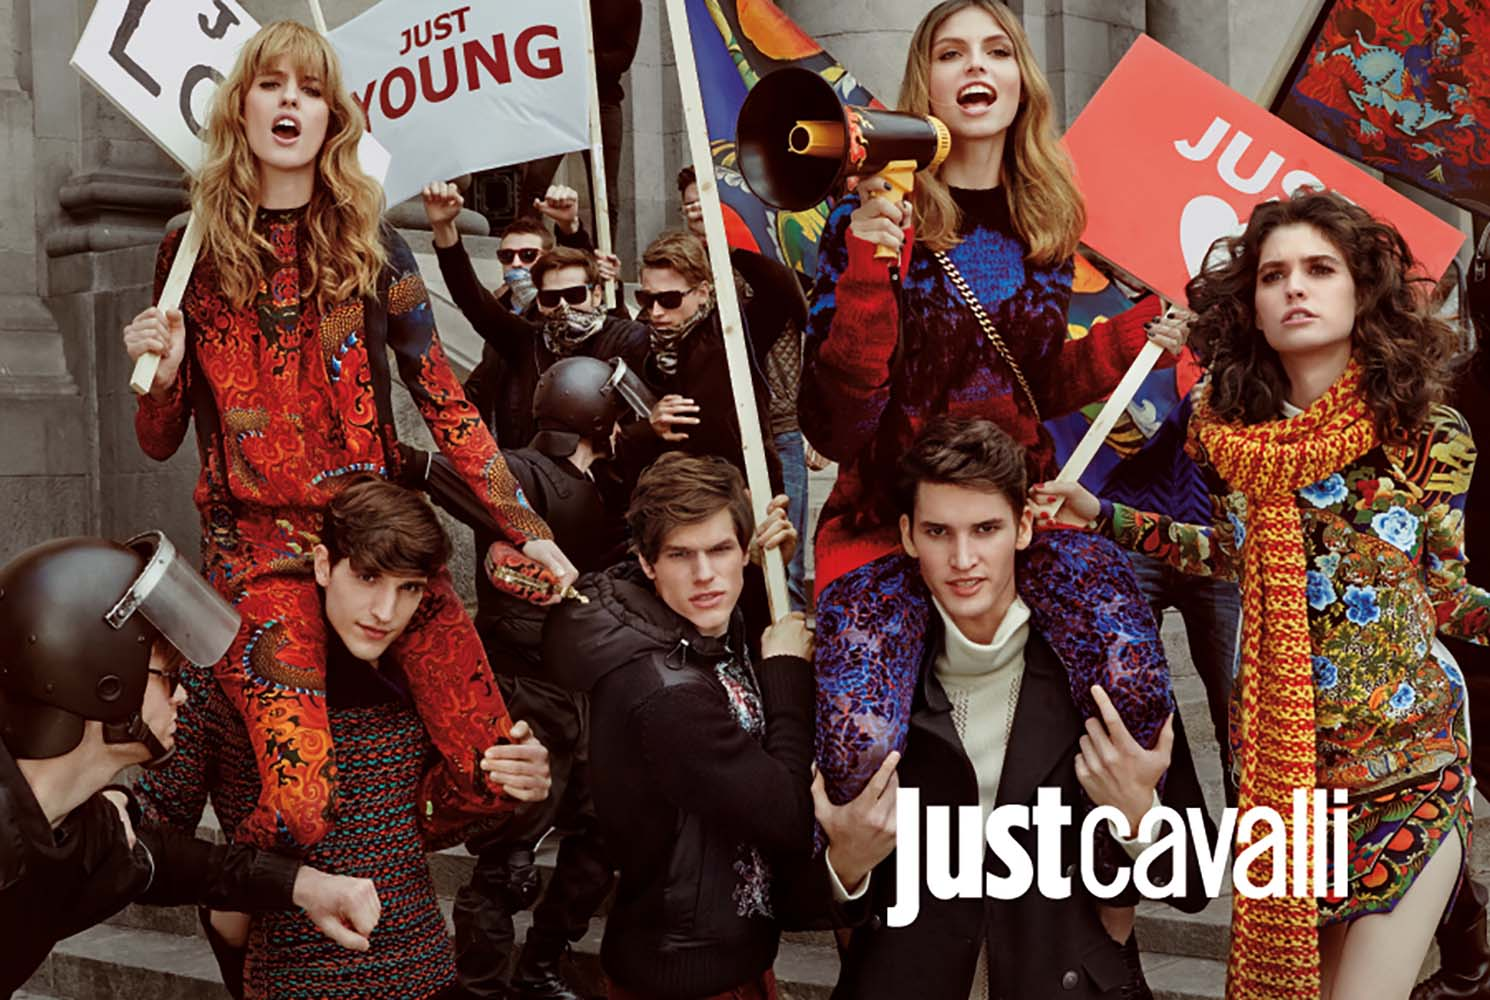 Just Cavalli by Braga + Federico